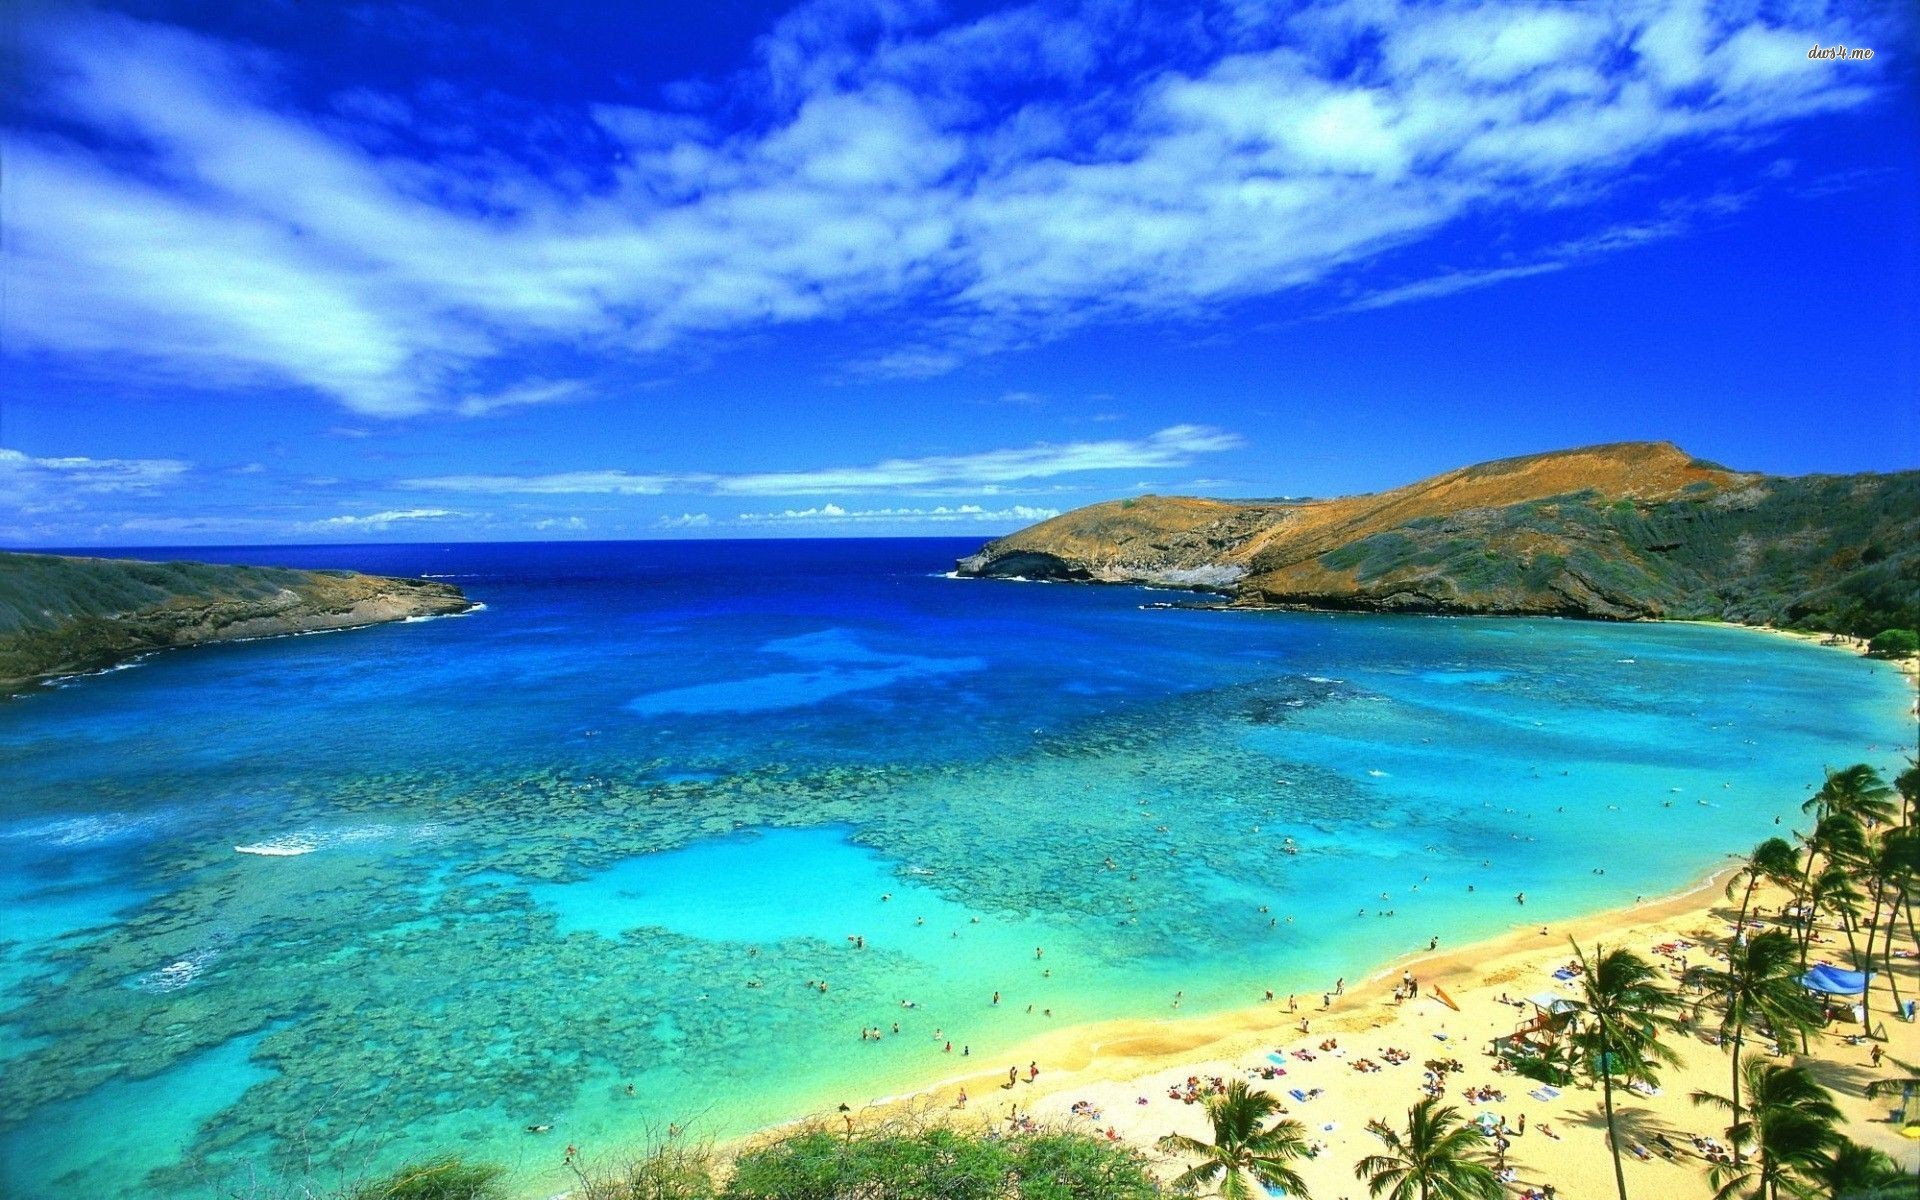 Blue Sky On Hawaii Beach Wallpaper HD 13113 Wallpaper Wallpaper 1920x1200